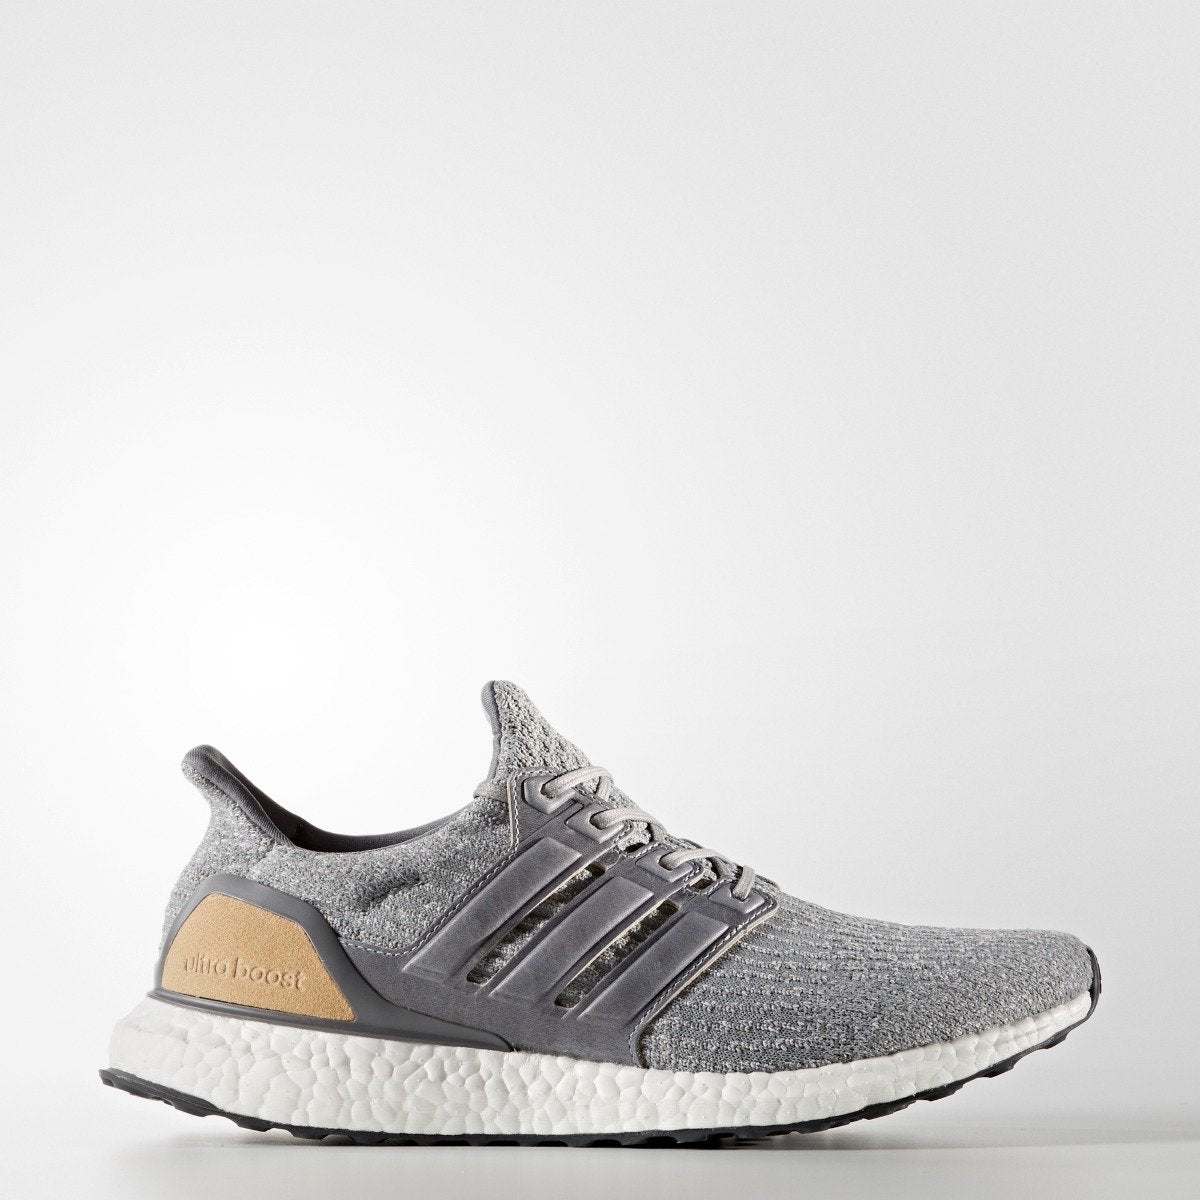 2deb04fdd62 Men s Adidas Running Ultraboost 3.0 Limited Edition Leather Cage Grey